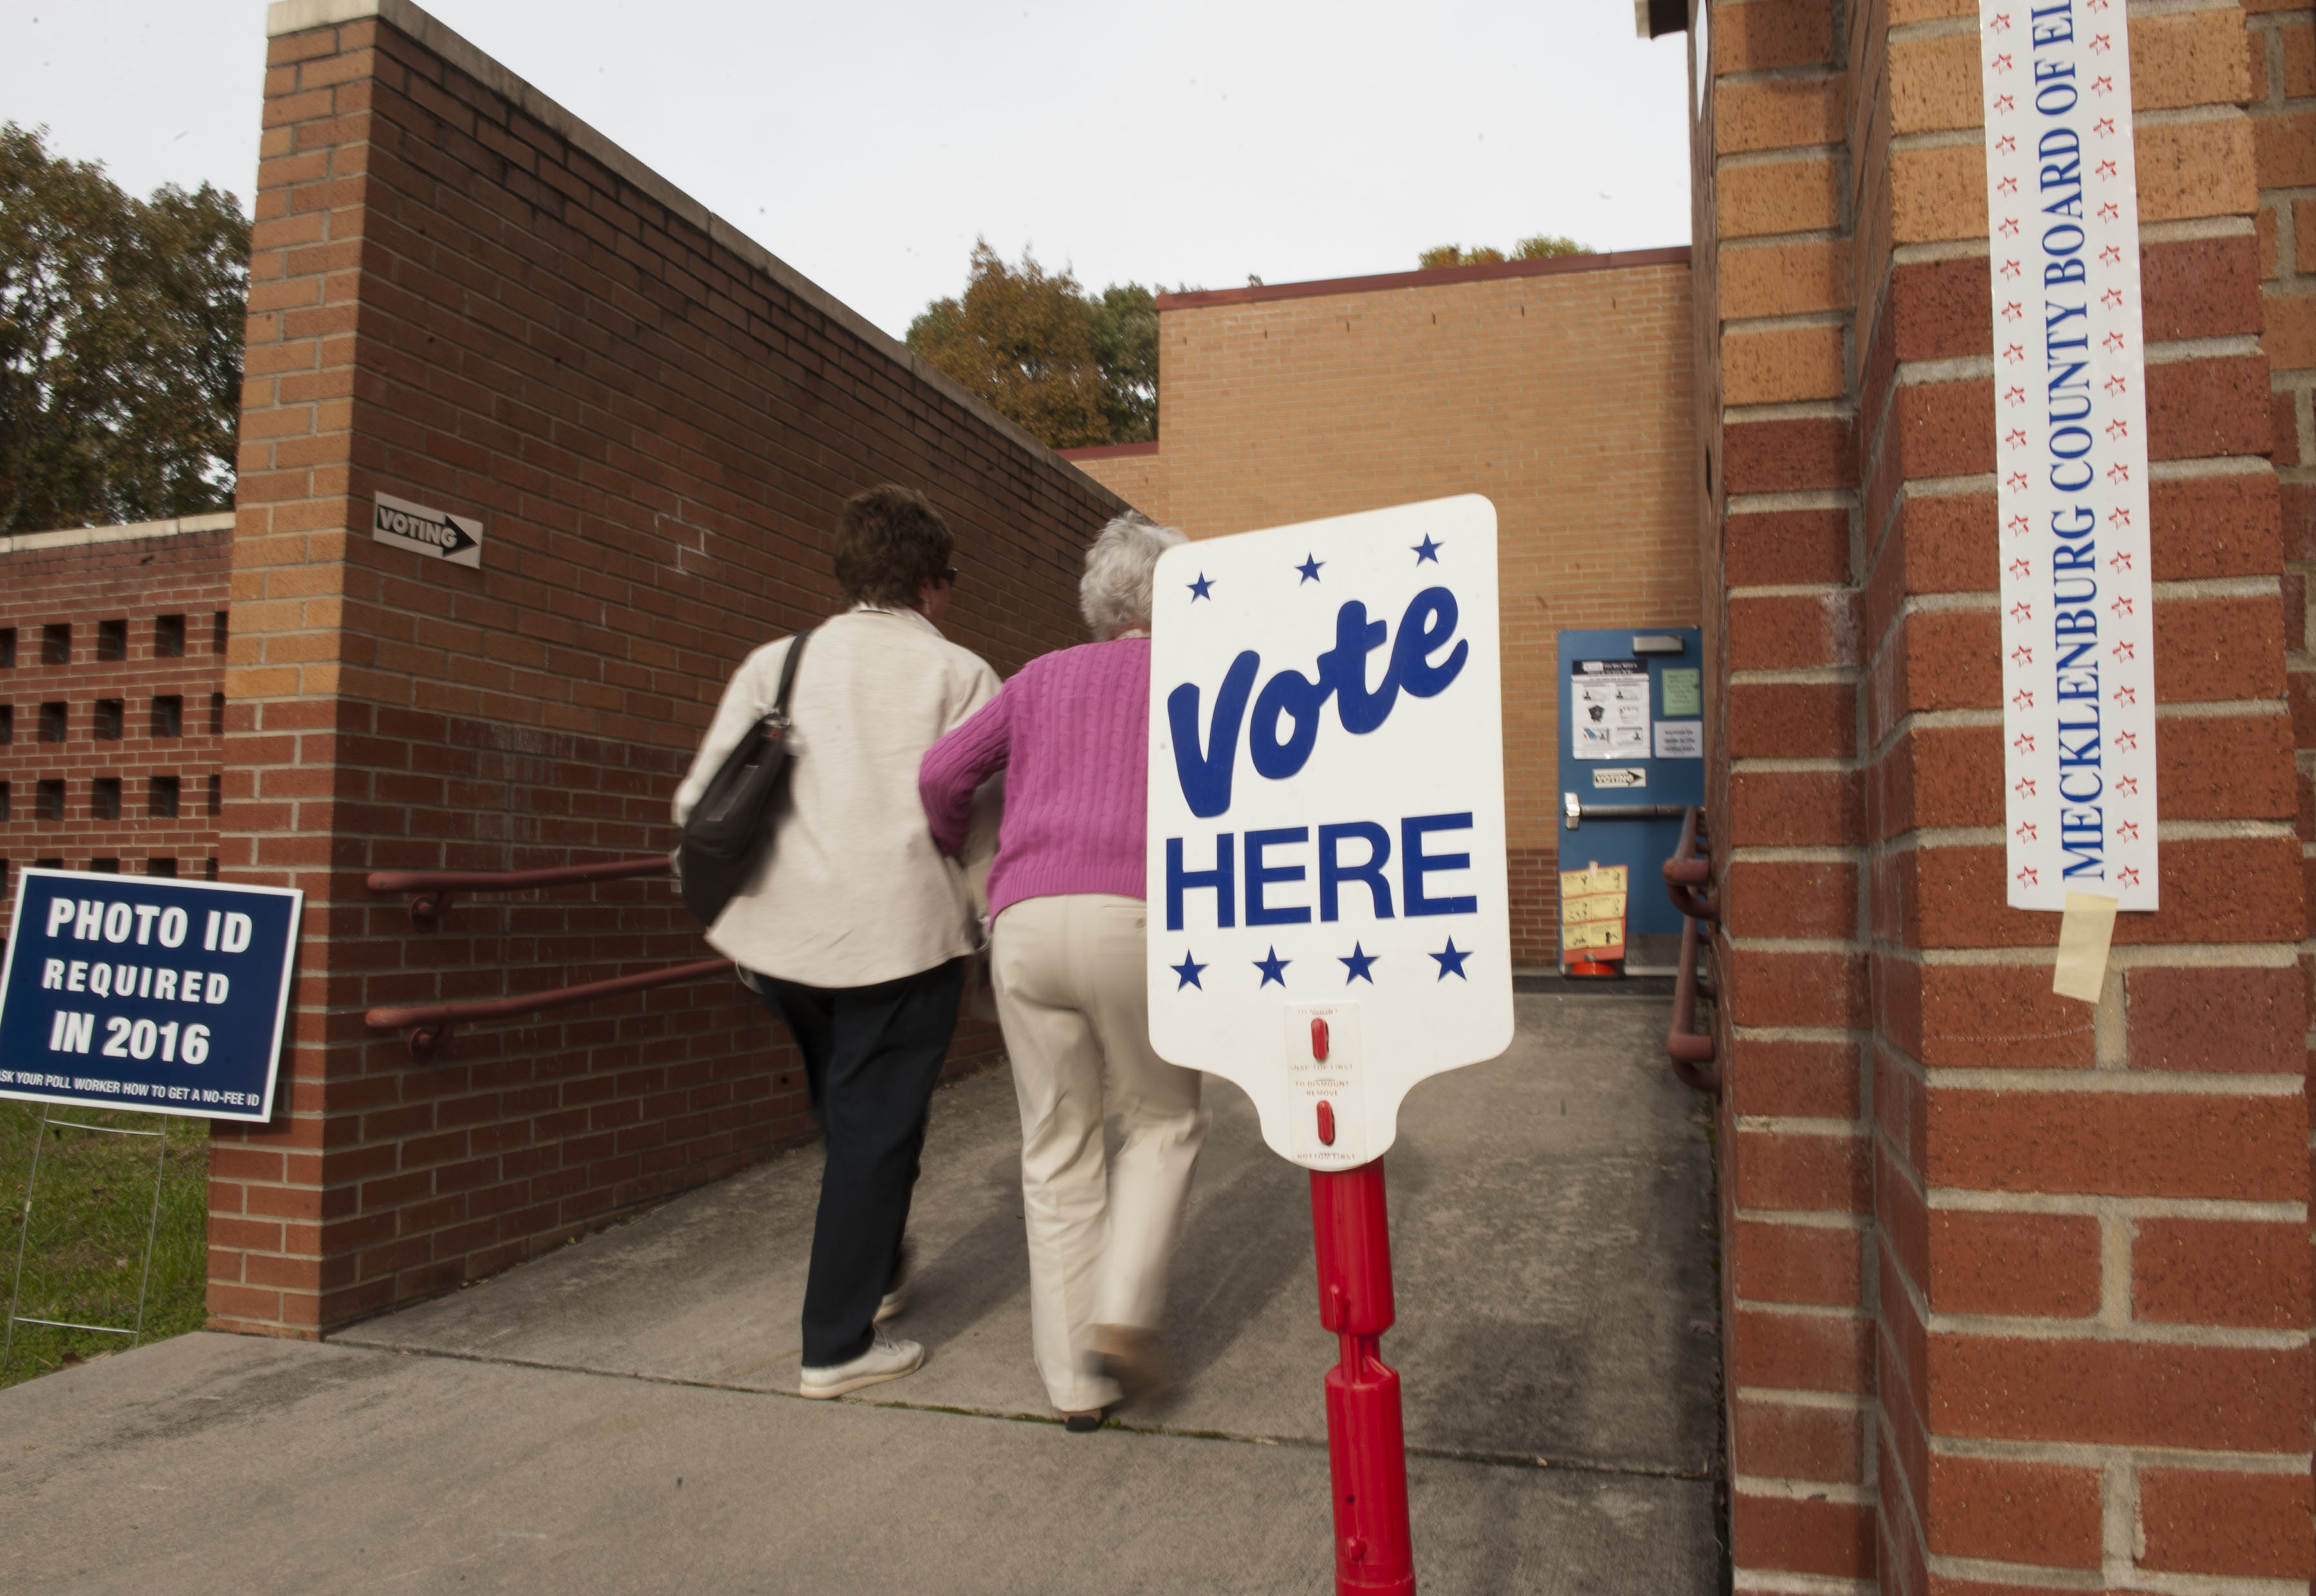 People enter Cotswold School to vote in Charlotte, North Carolina.